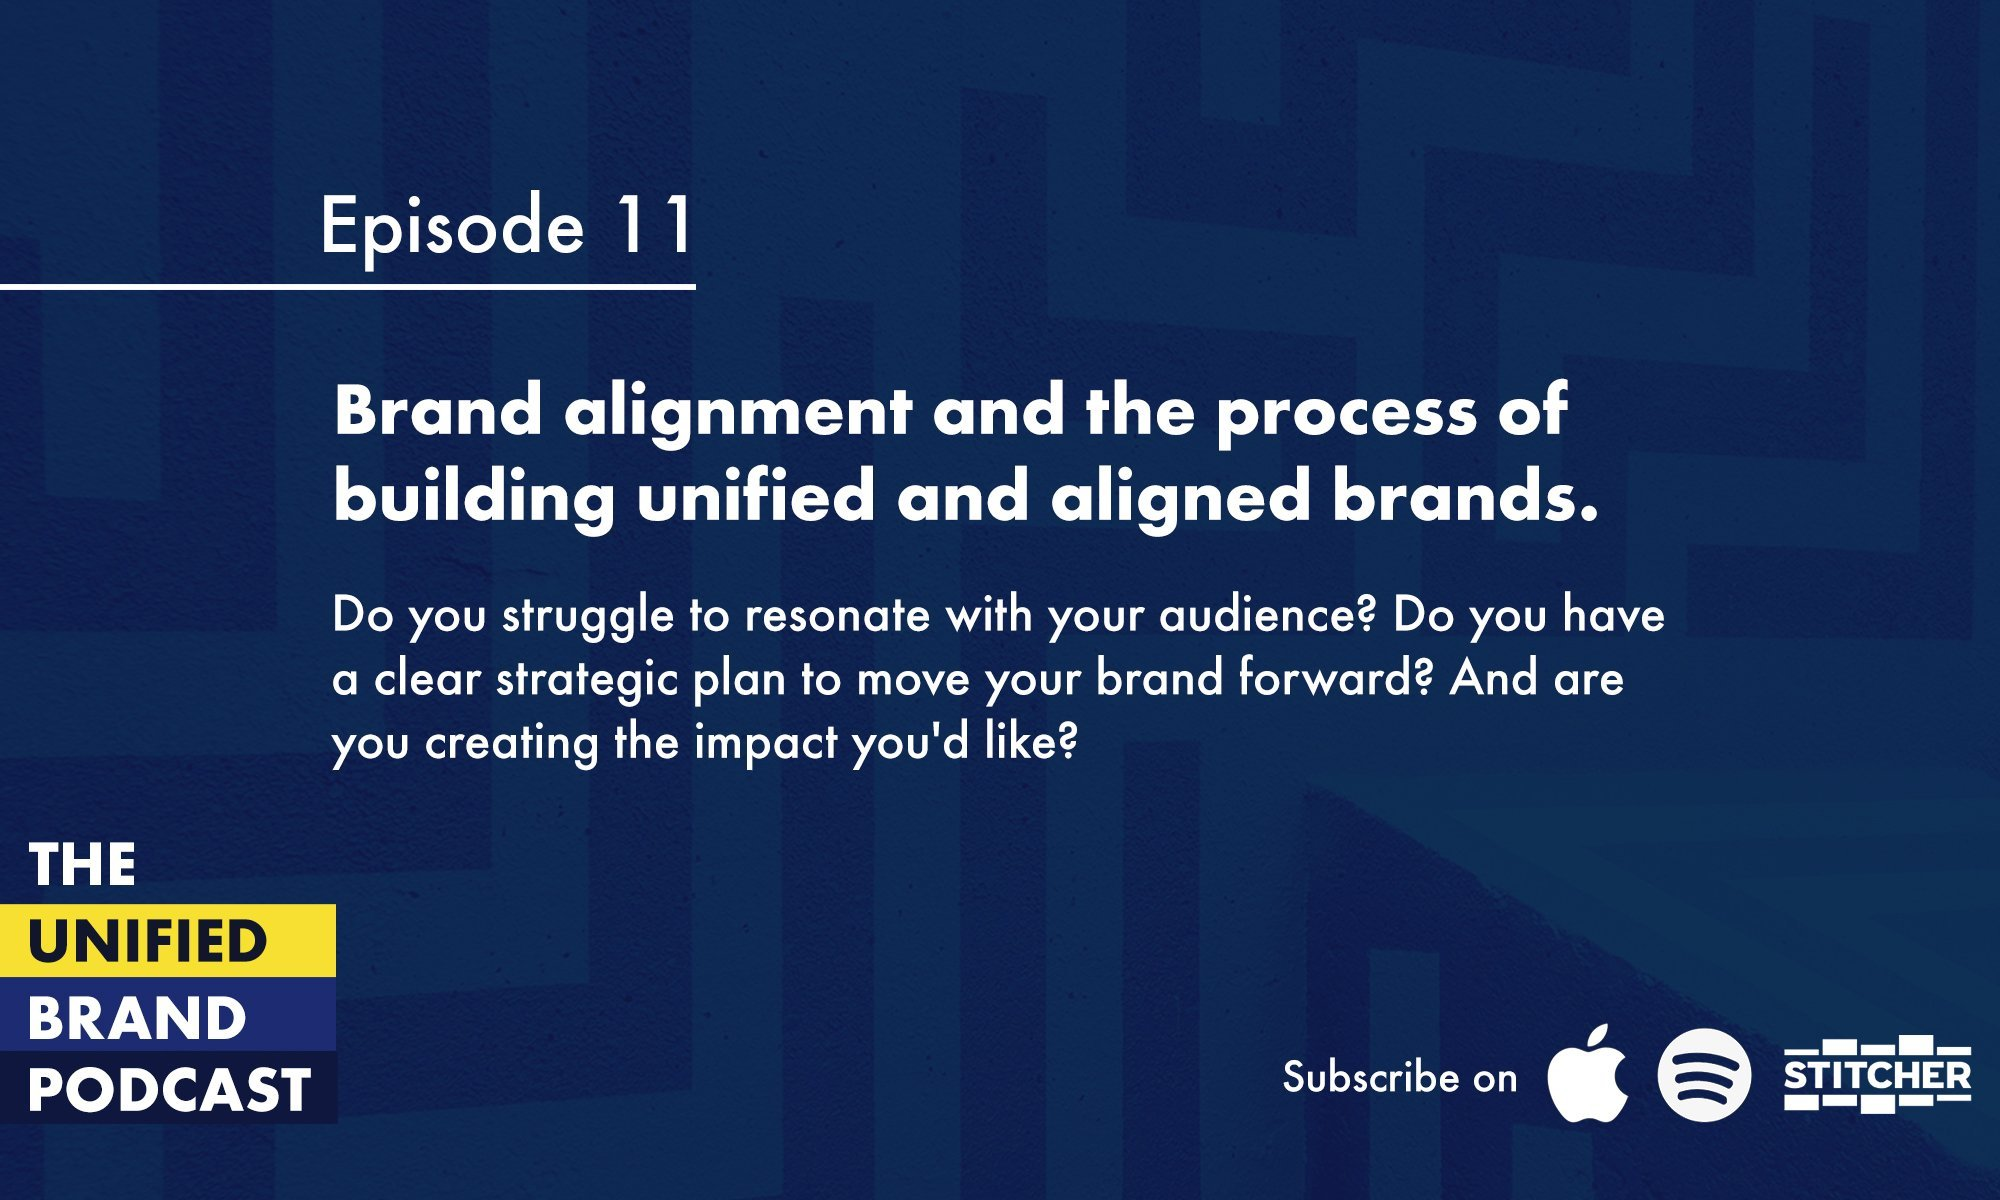 Brand alignment and the process of building unified and aligned brands